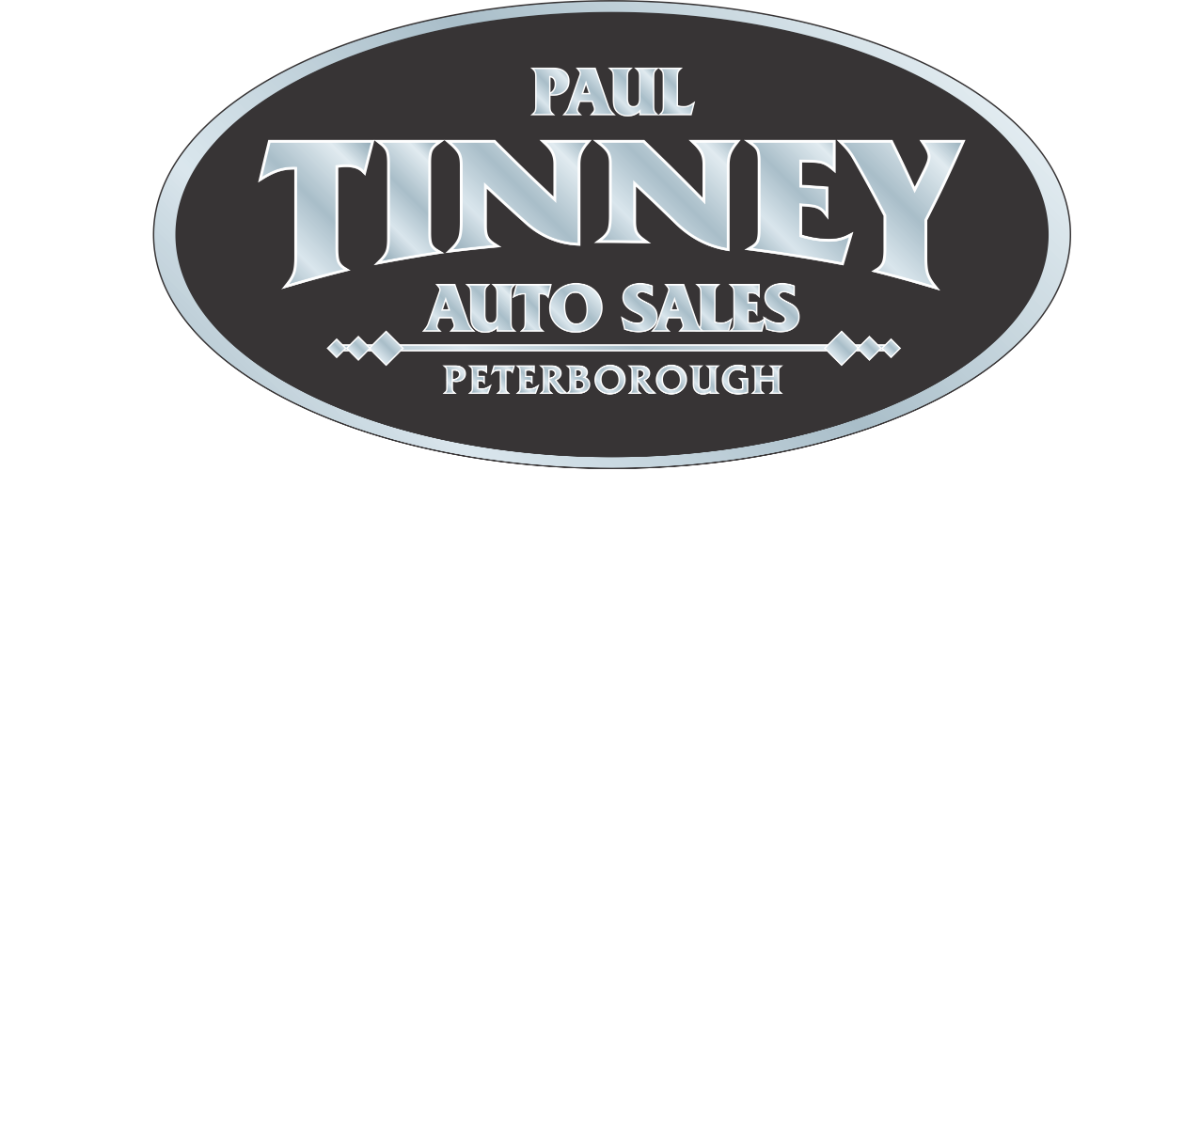 Paul_Tinney_Auto_Sales.png